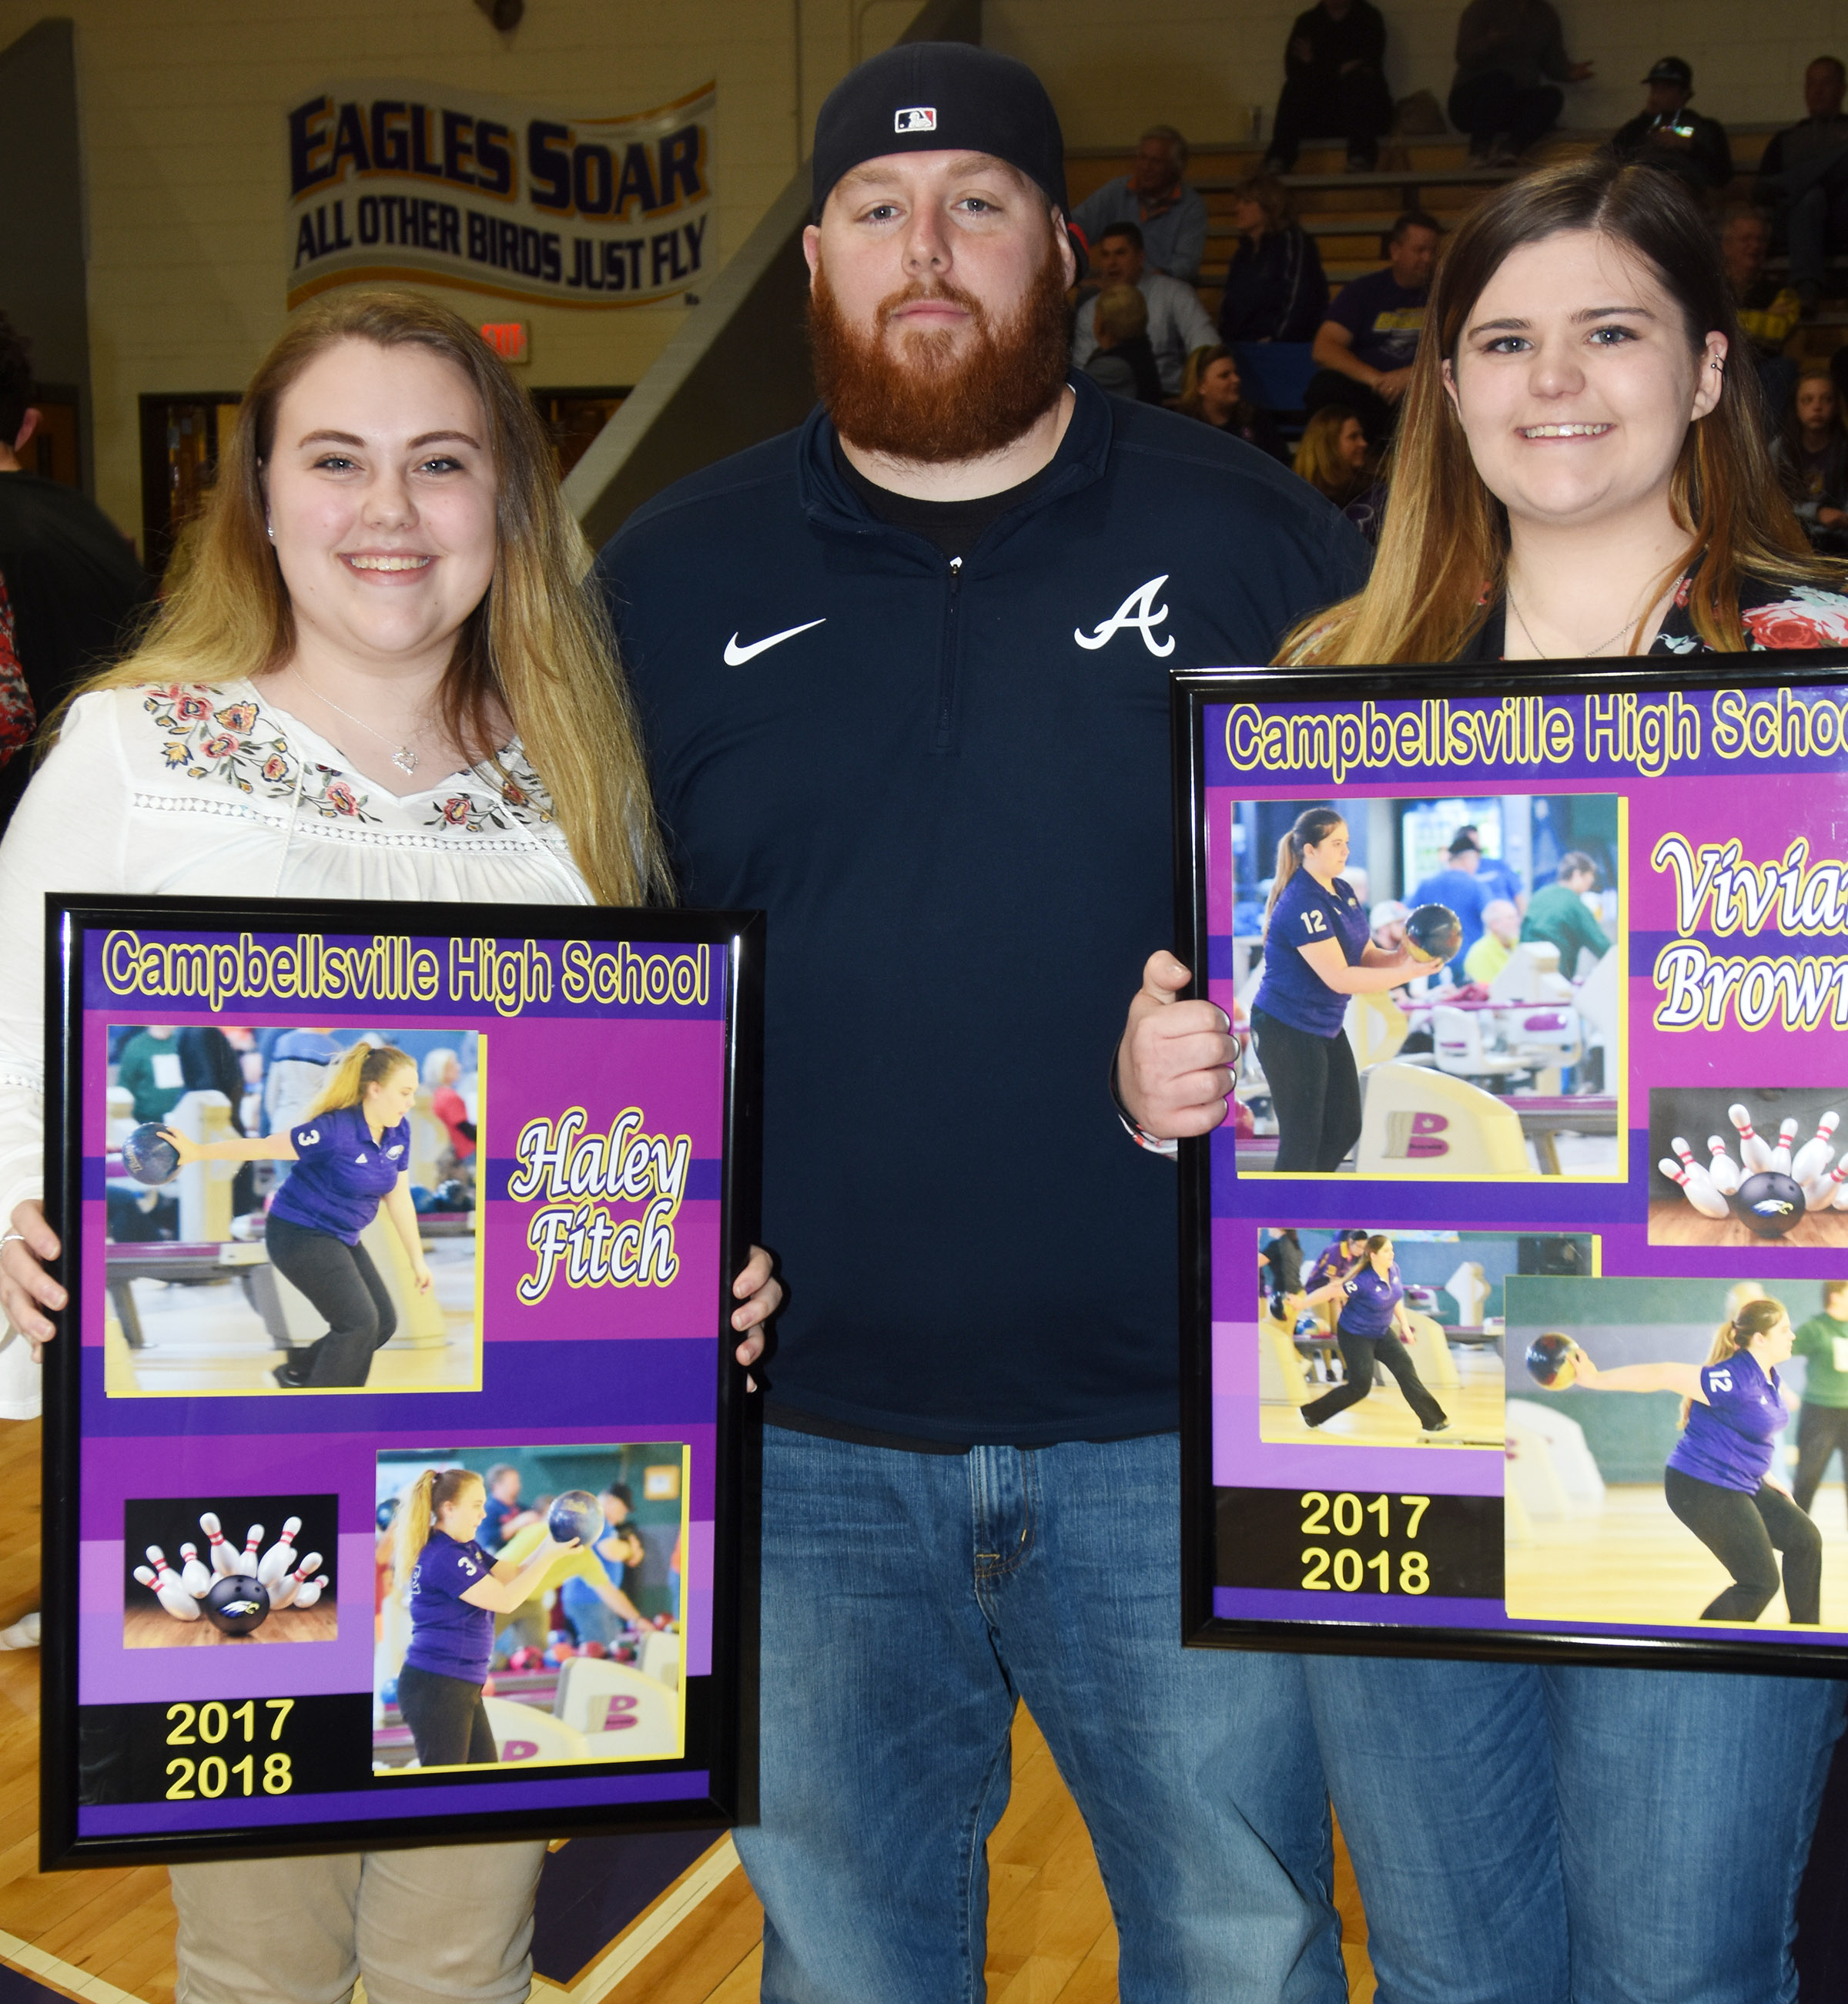 CHS senior bowling team members Haley Fitch, at left, and Vivian Brown are pictured with head coach Stephen Tucker.